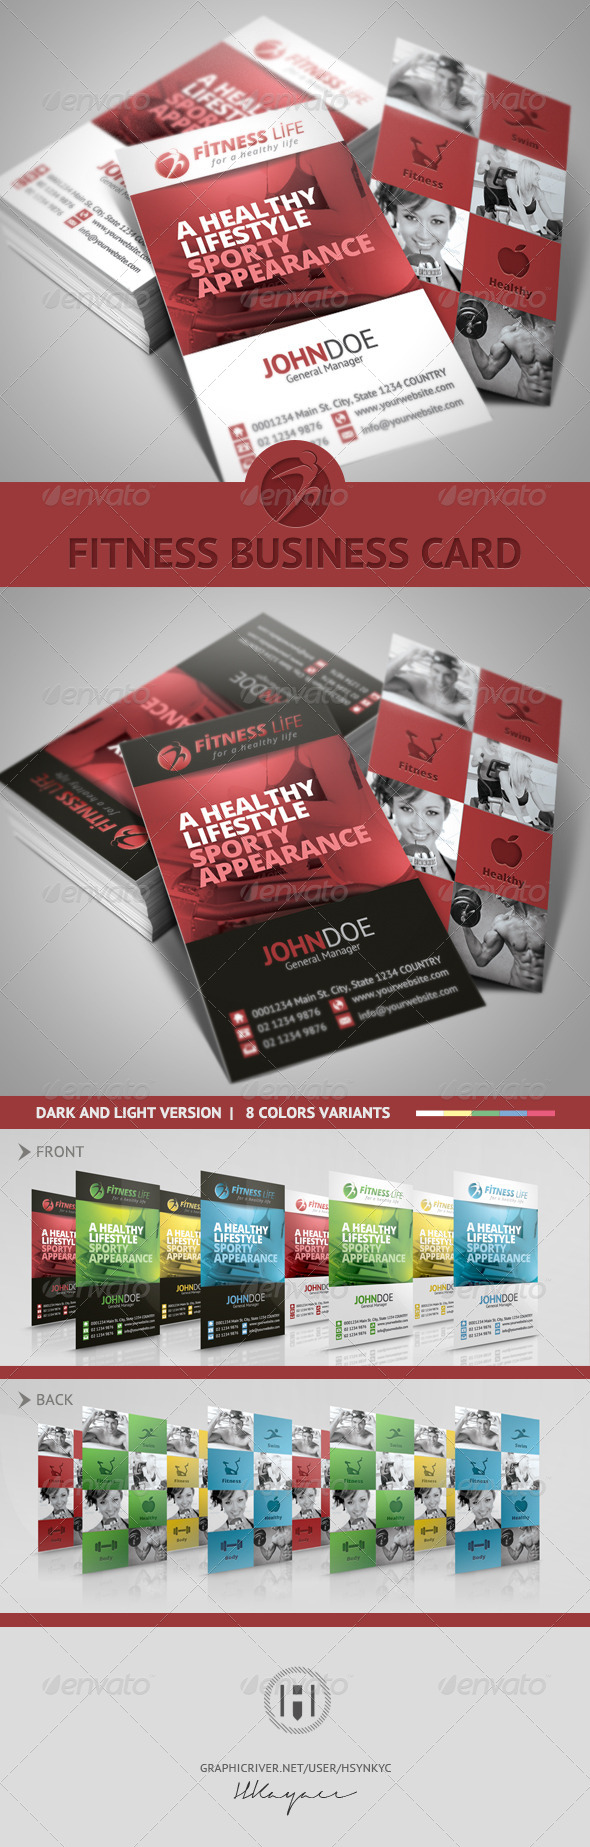 GraphicRiver Fitness Business Card 7470302